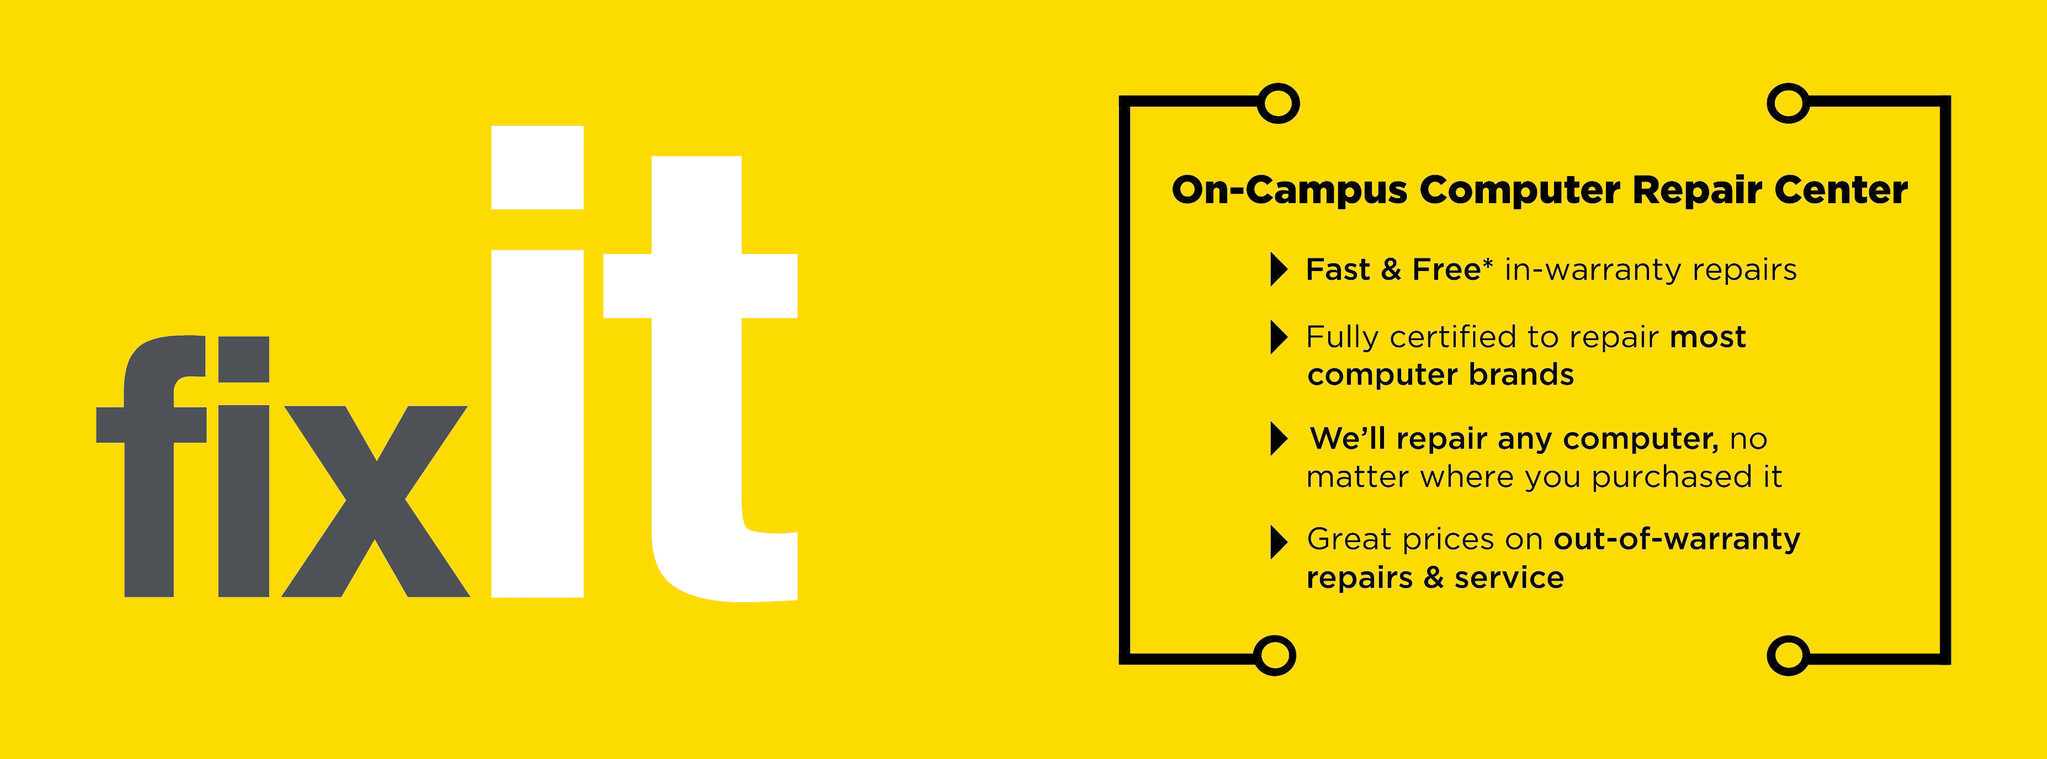 Why drive off campus? In-warranty fixIT repairs ...